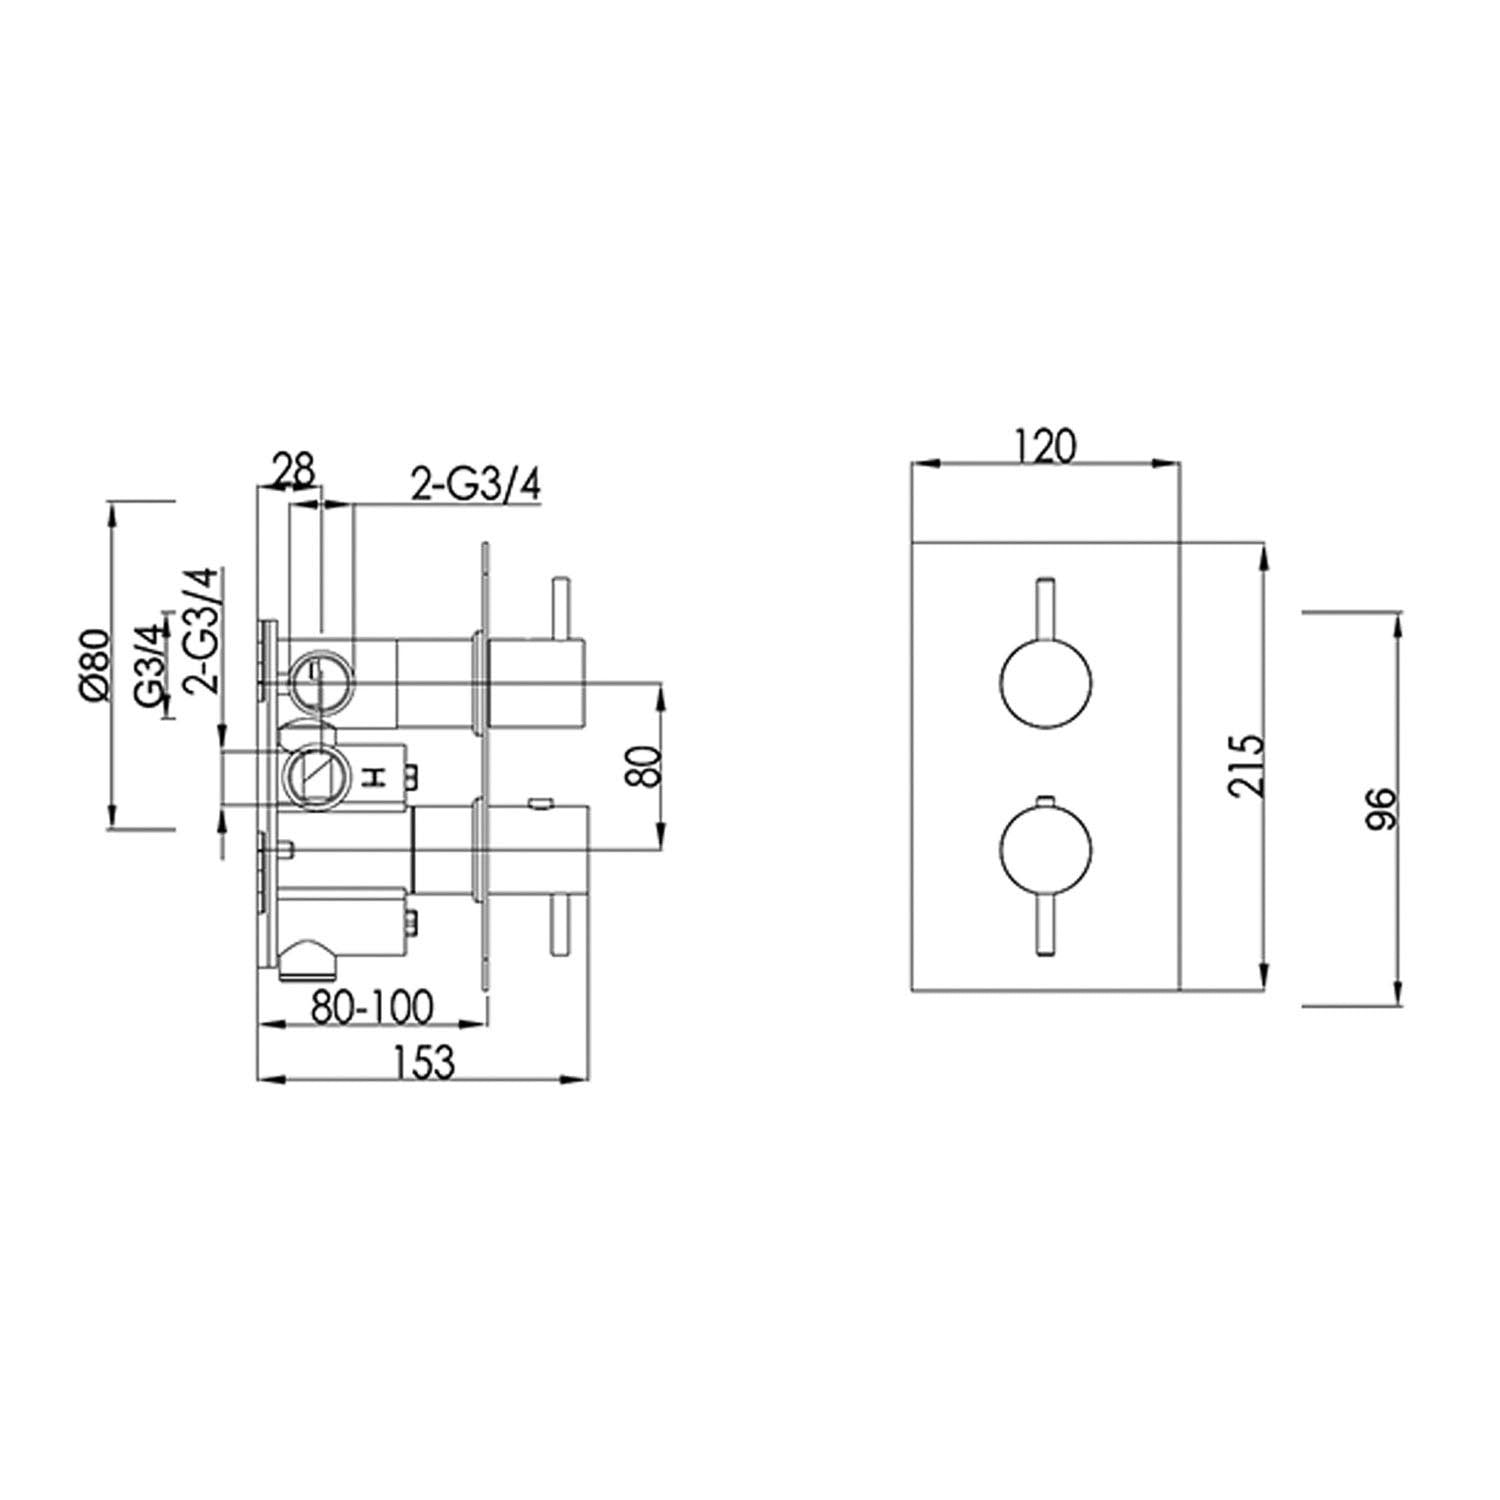 Single outlet Modale Concealed Shower Valve with a chrome finish dimensional drawing